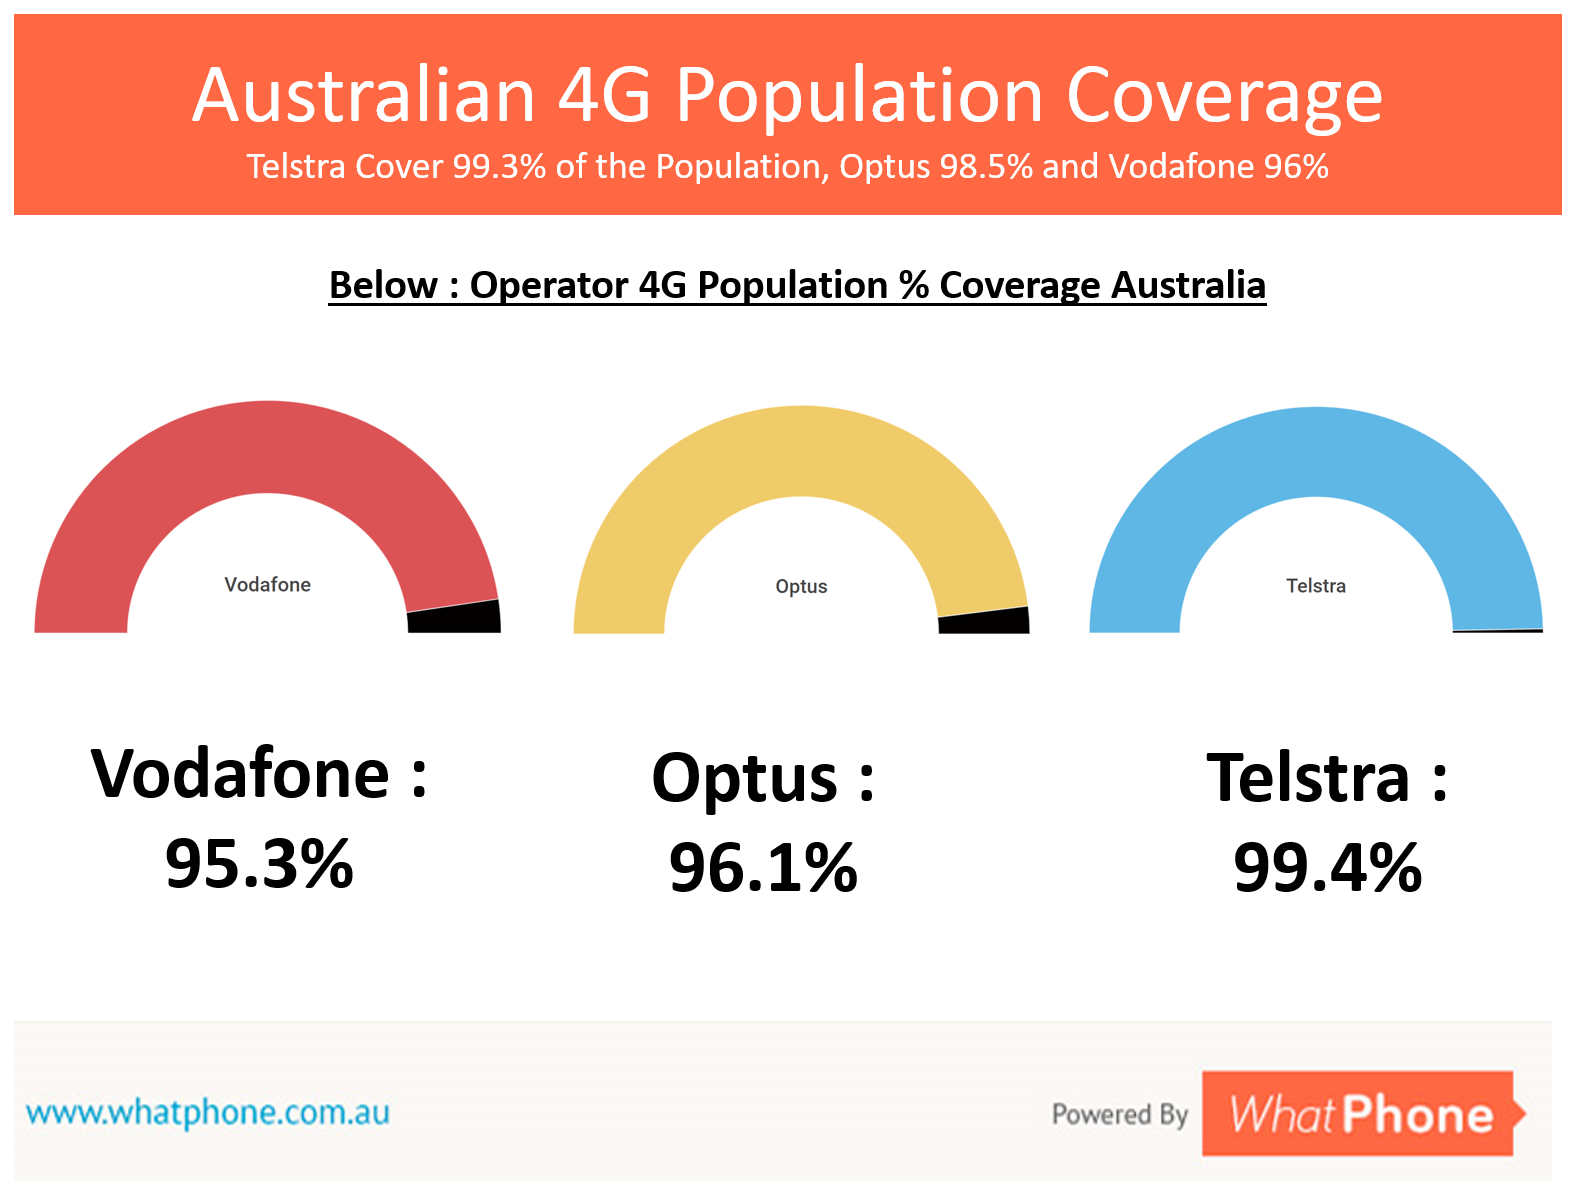 4G population coverage levels are, again, very similar between opertors.